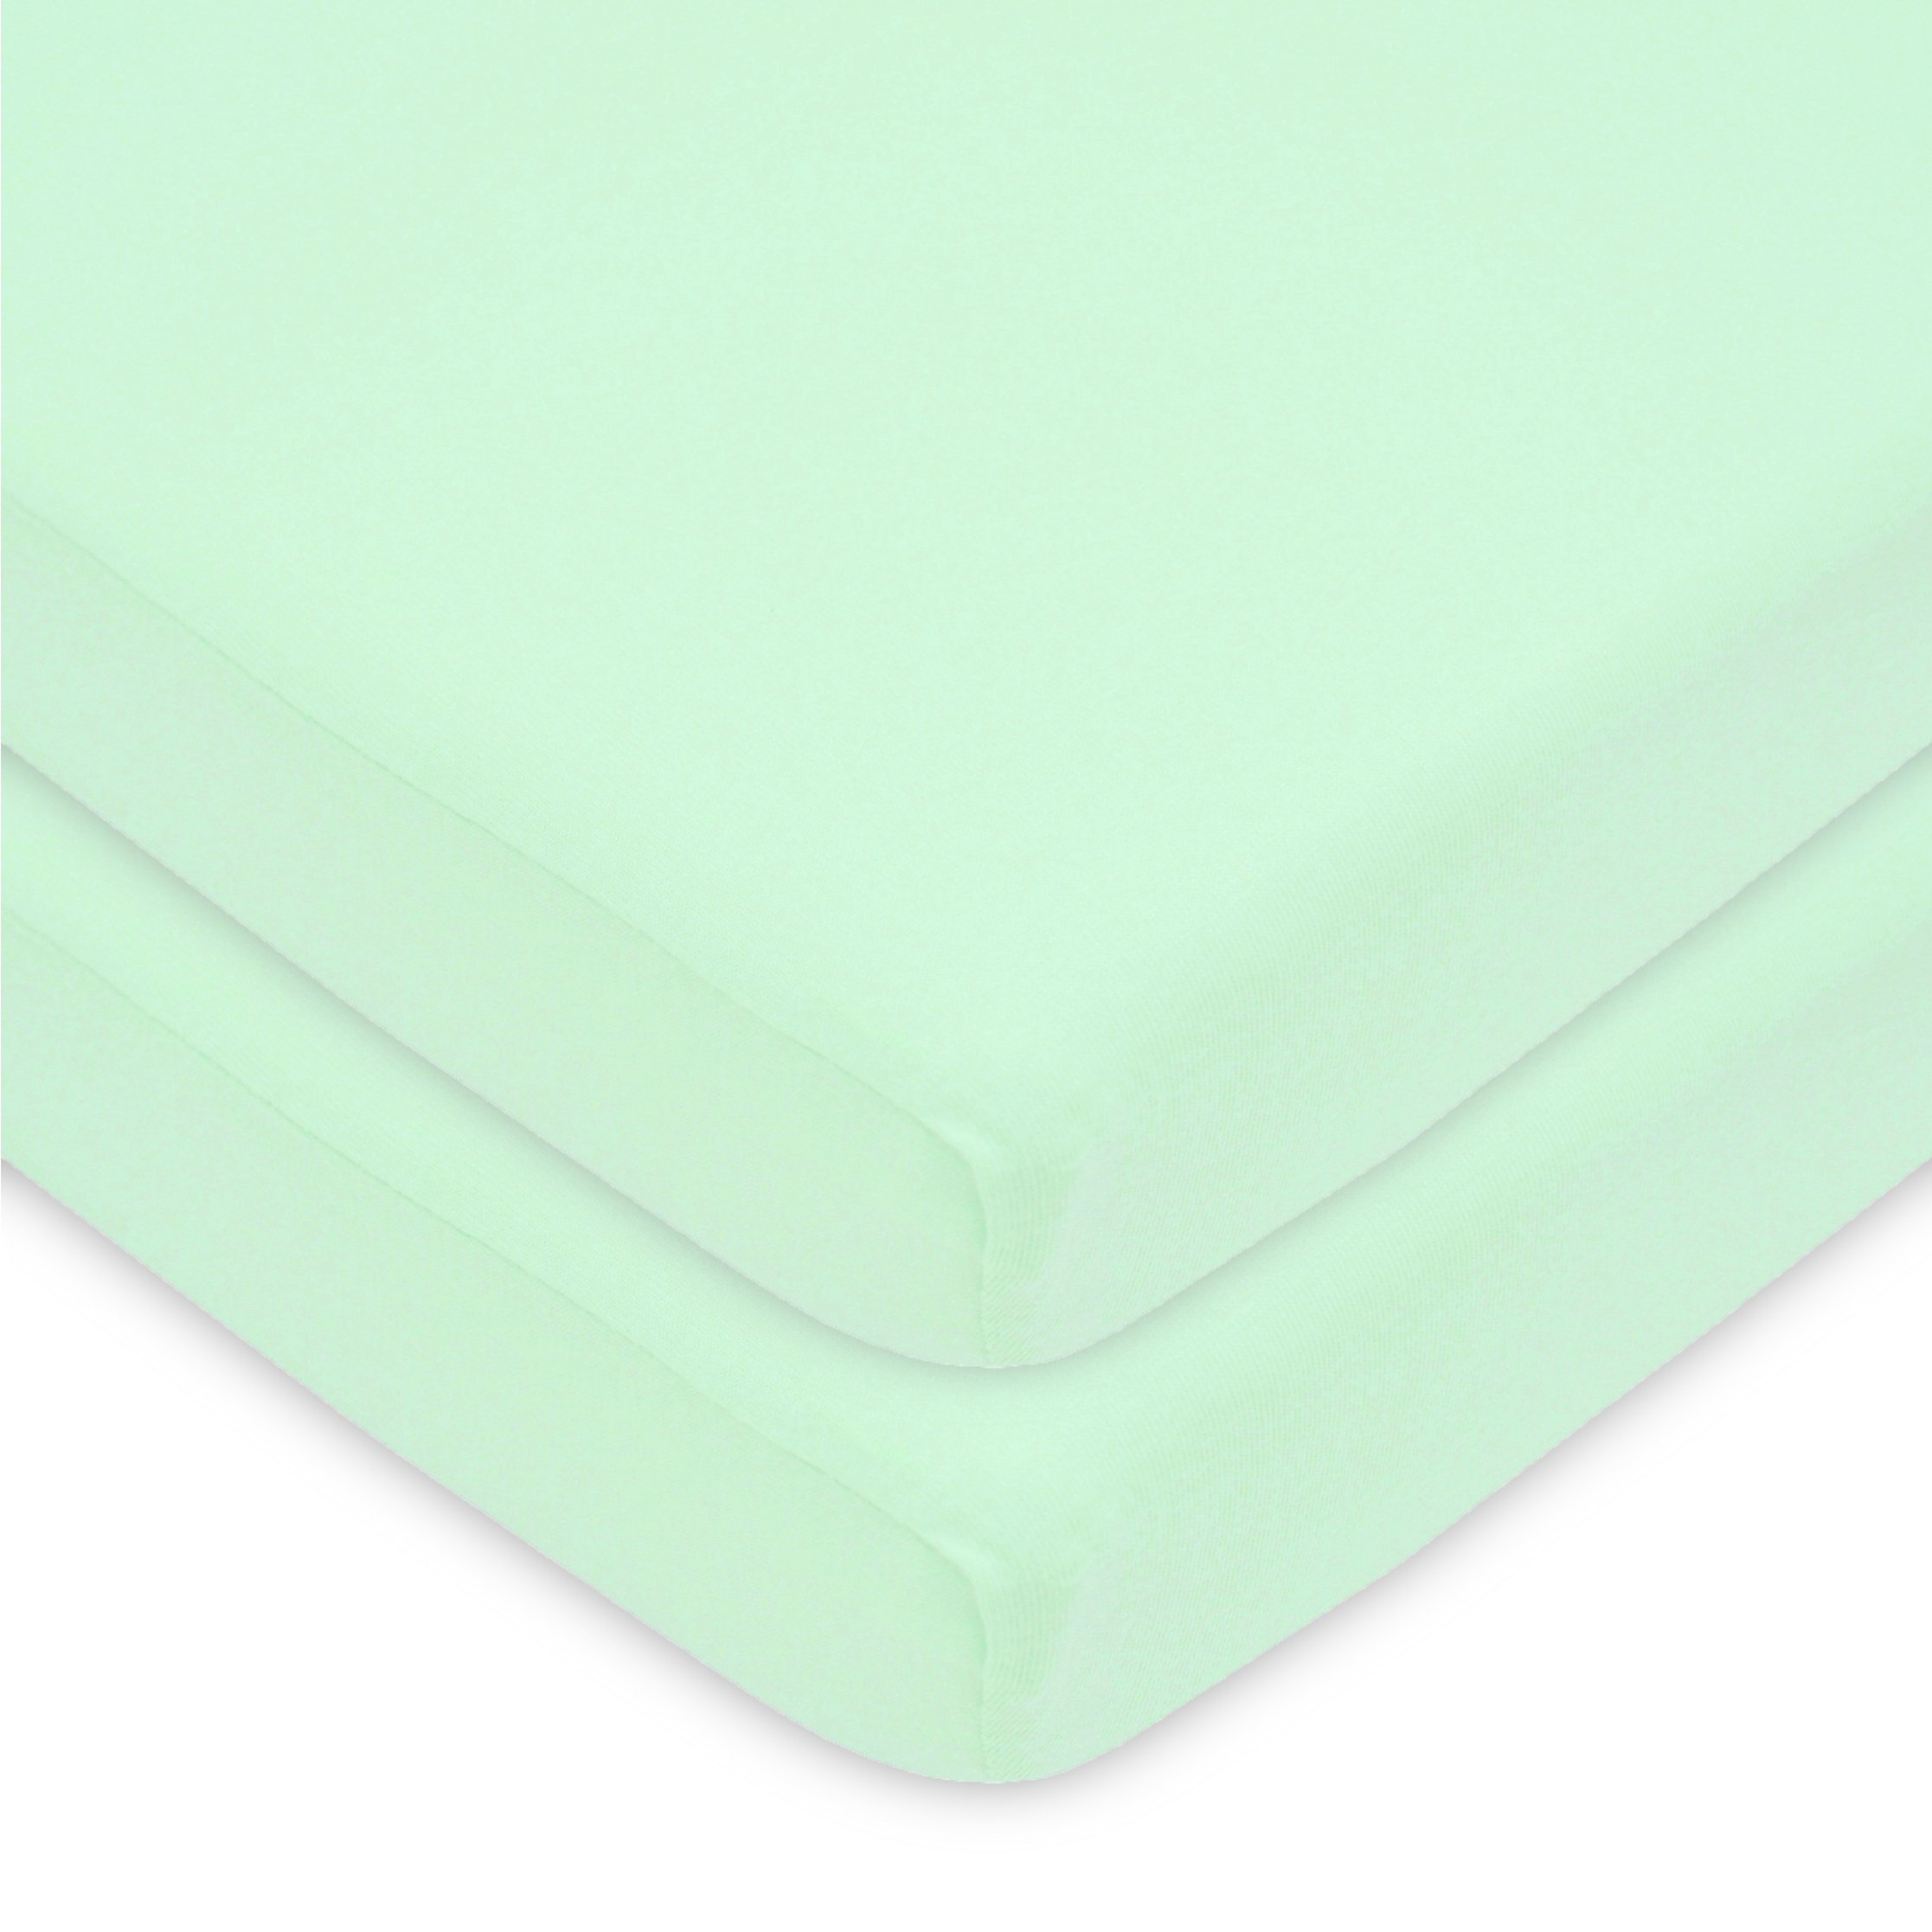 American Baby Company 100% Natural Cotton Value Jersey Knit Fitted Portable/Mini-Crib Sheet, Mint, Soft Breathable, for Boys and Girls, Pack of 2